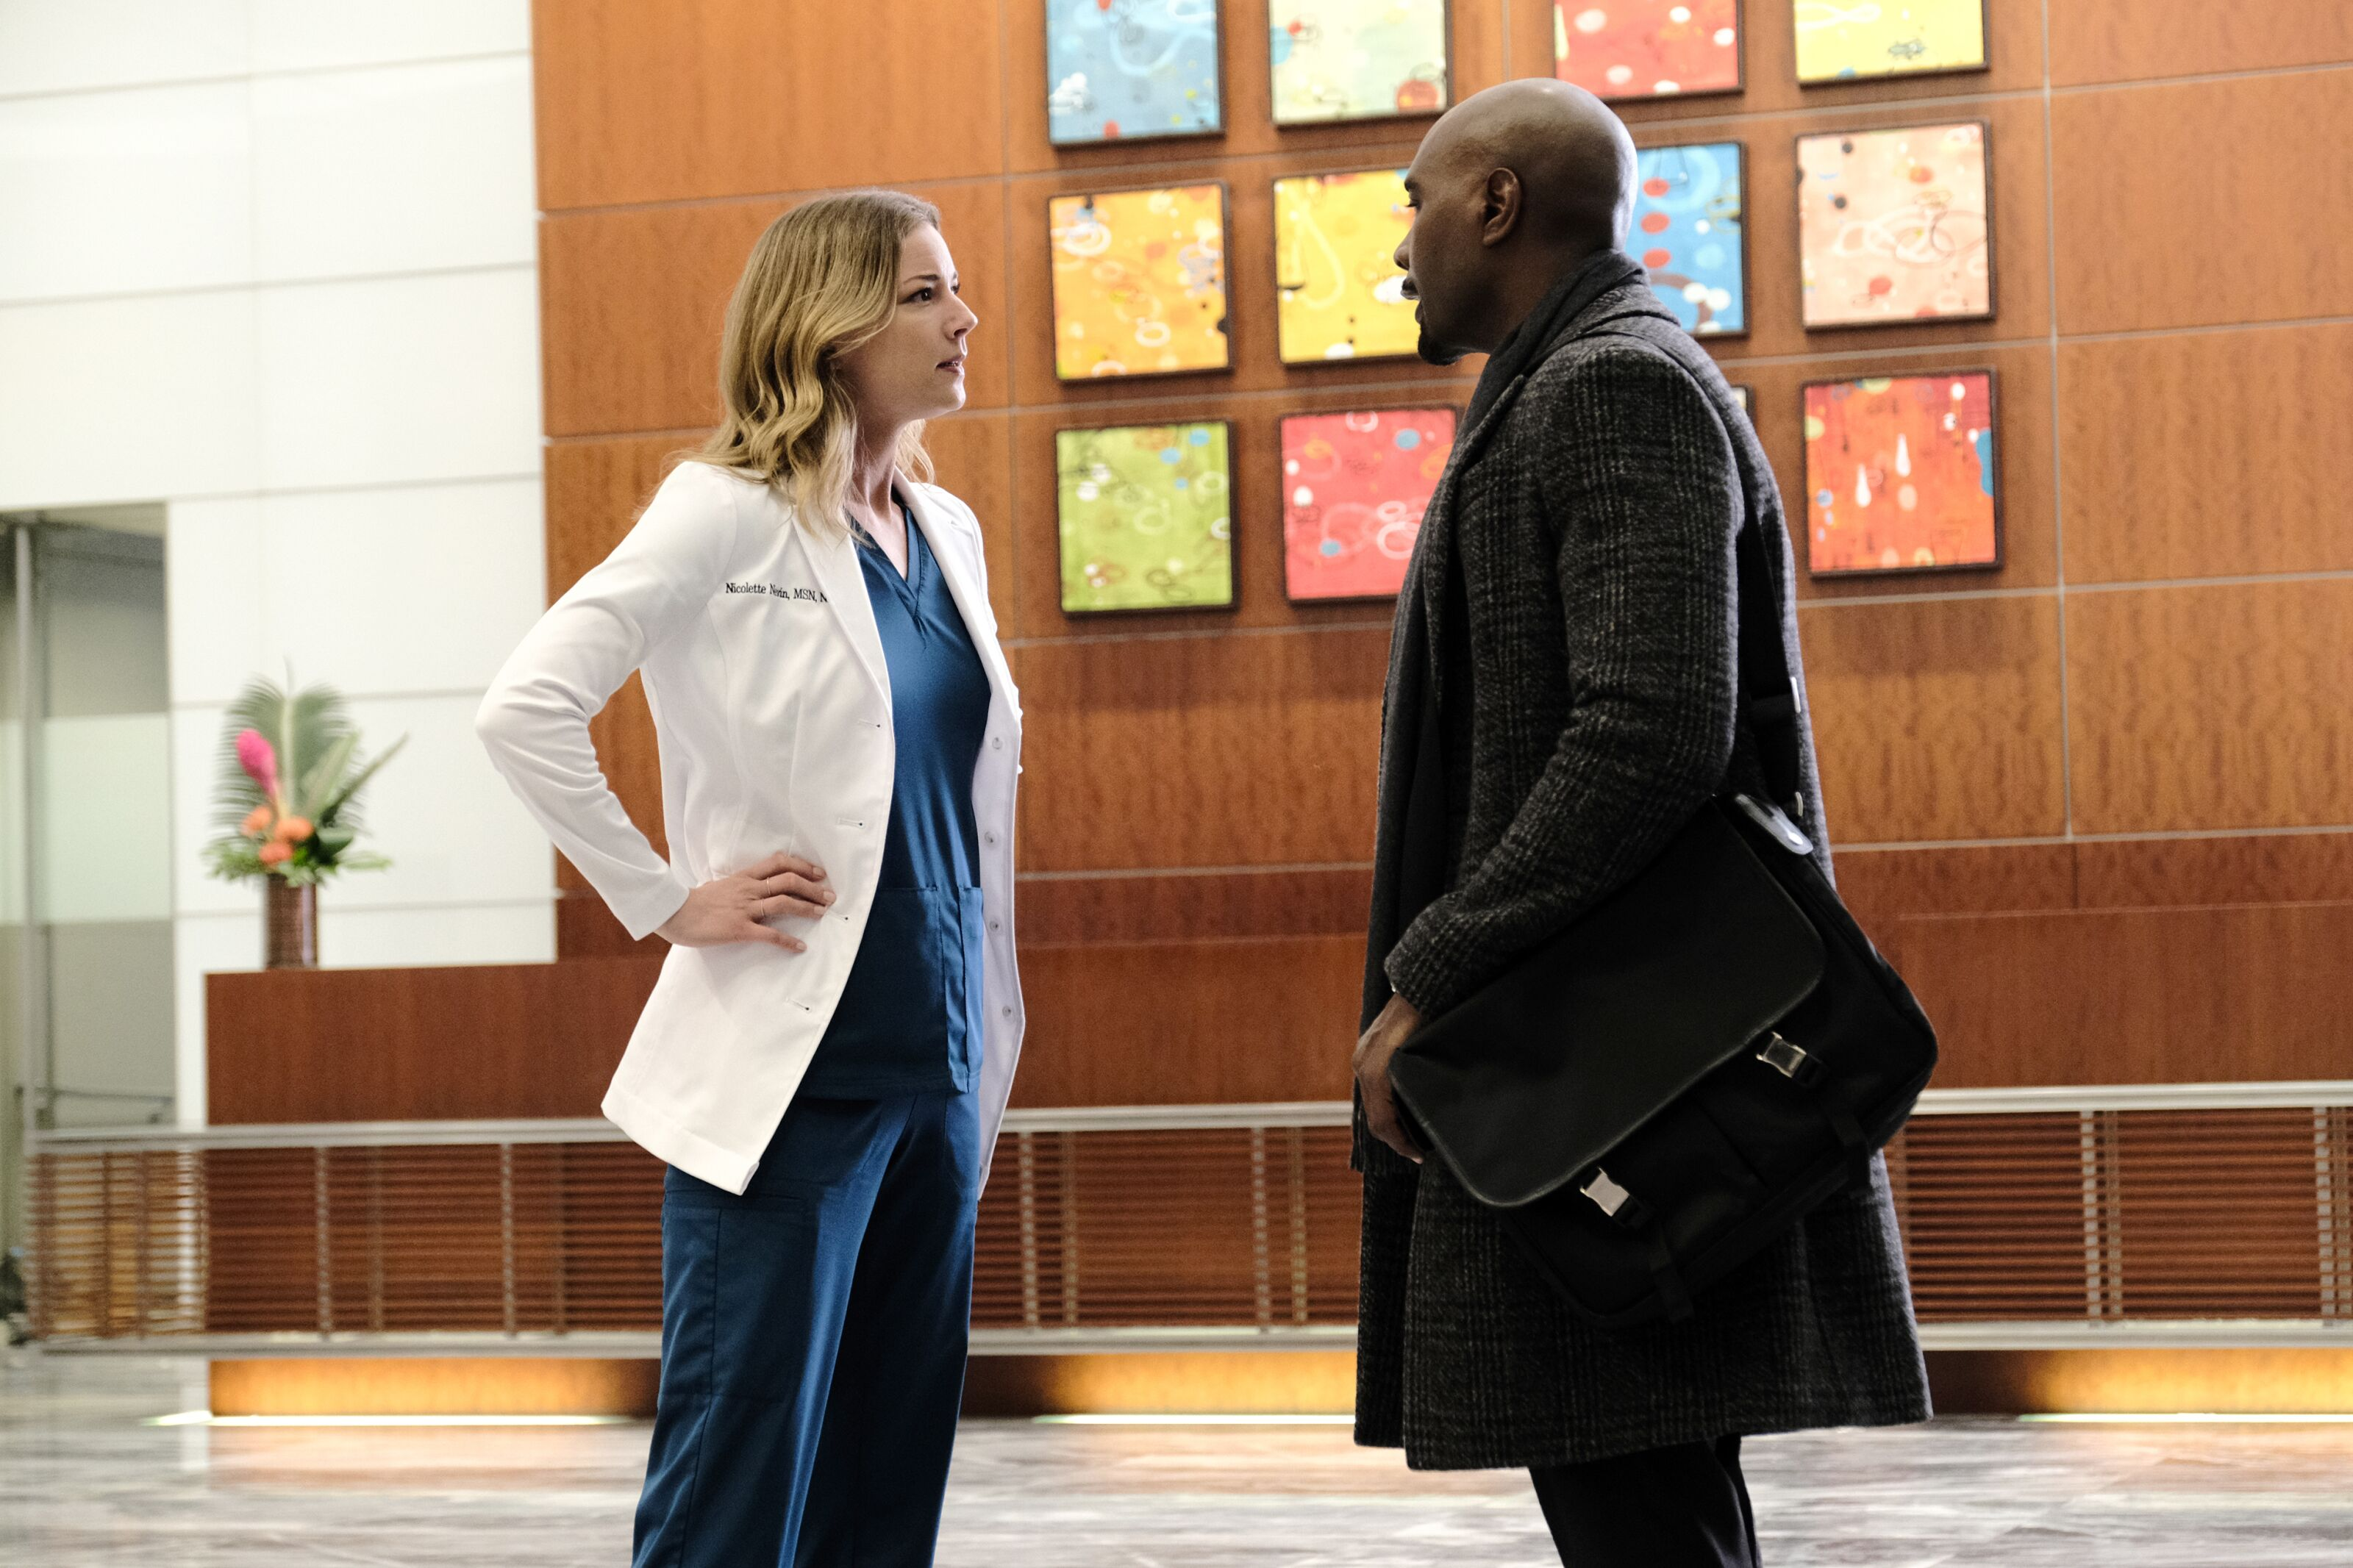 The Resident Season 3, Episode 15: What to expect, how to watch